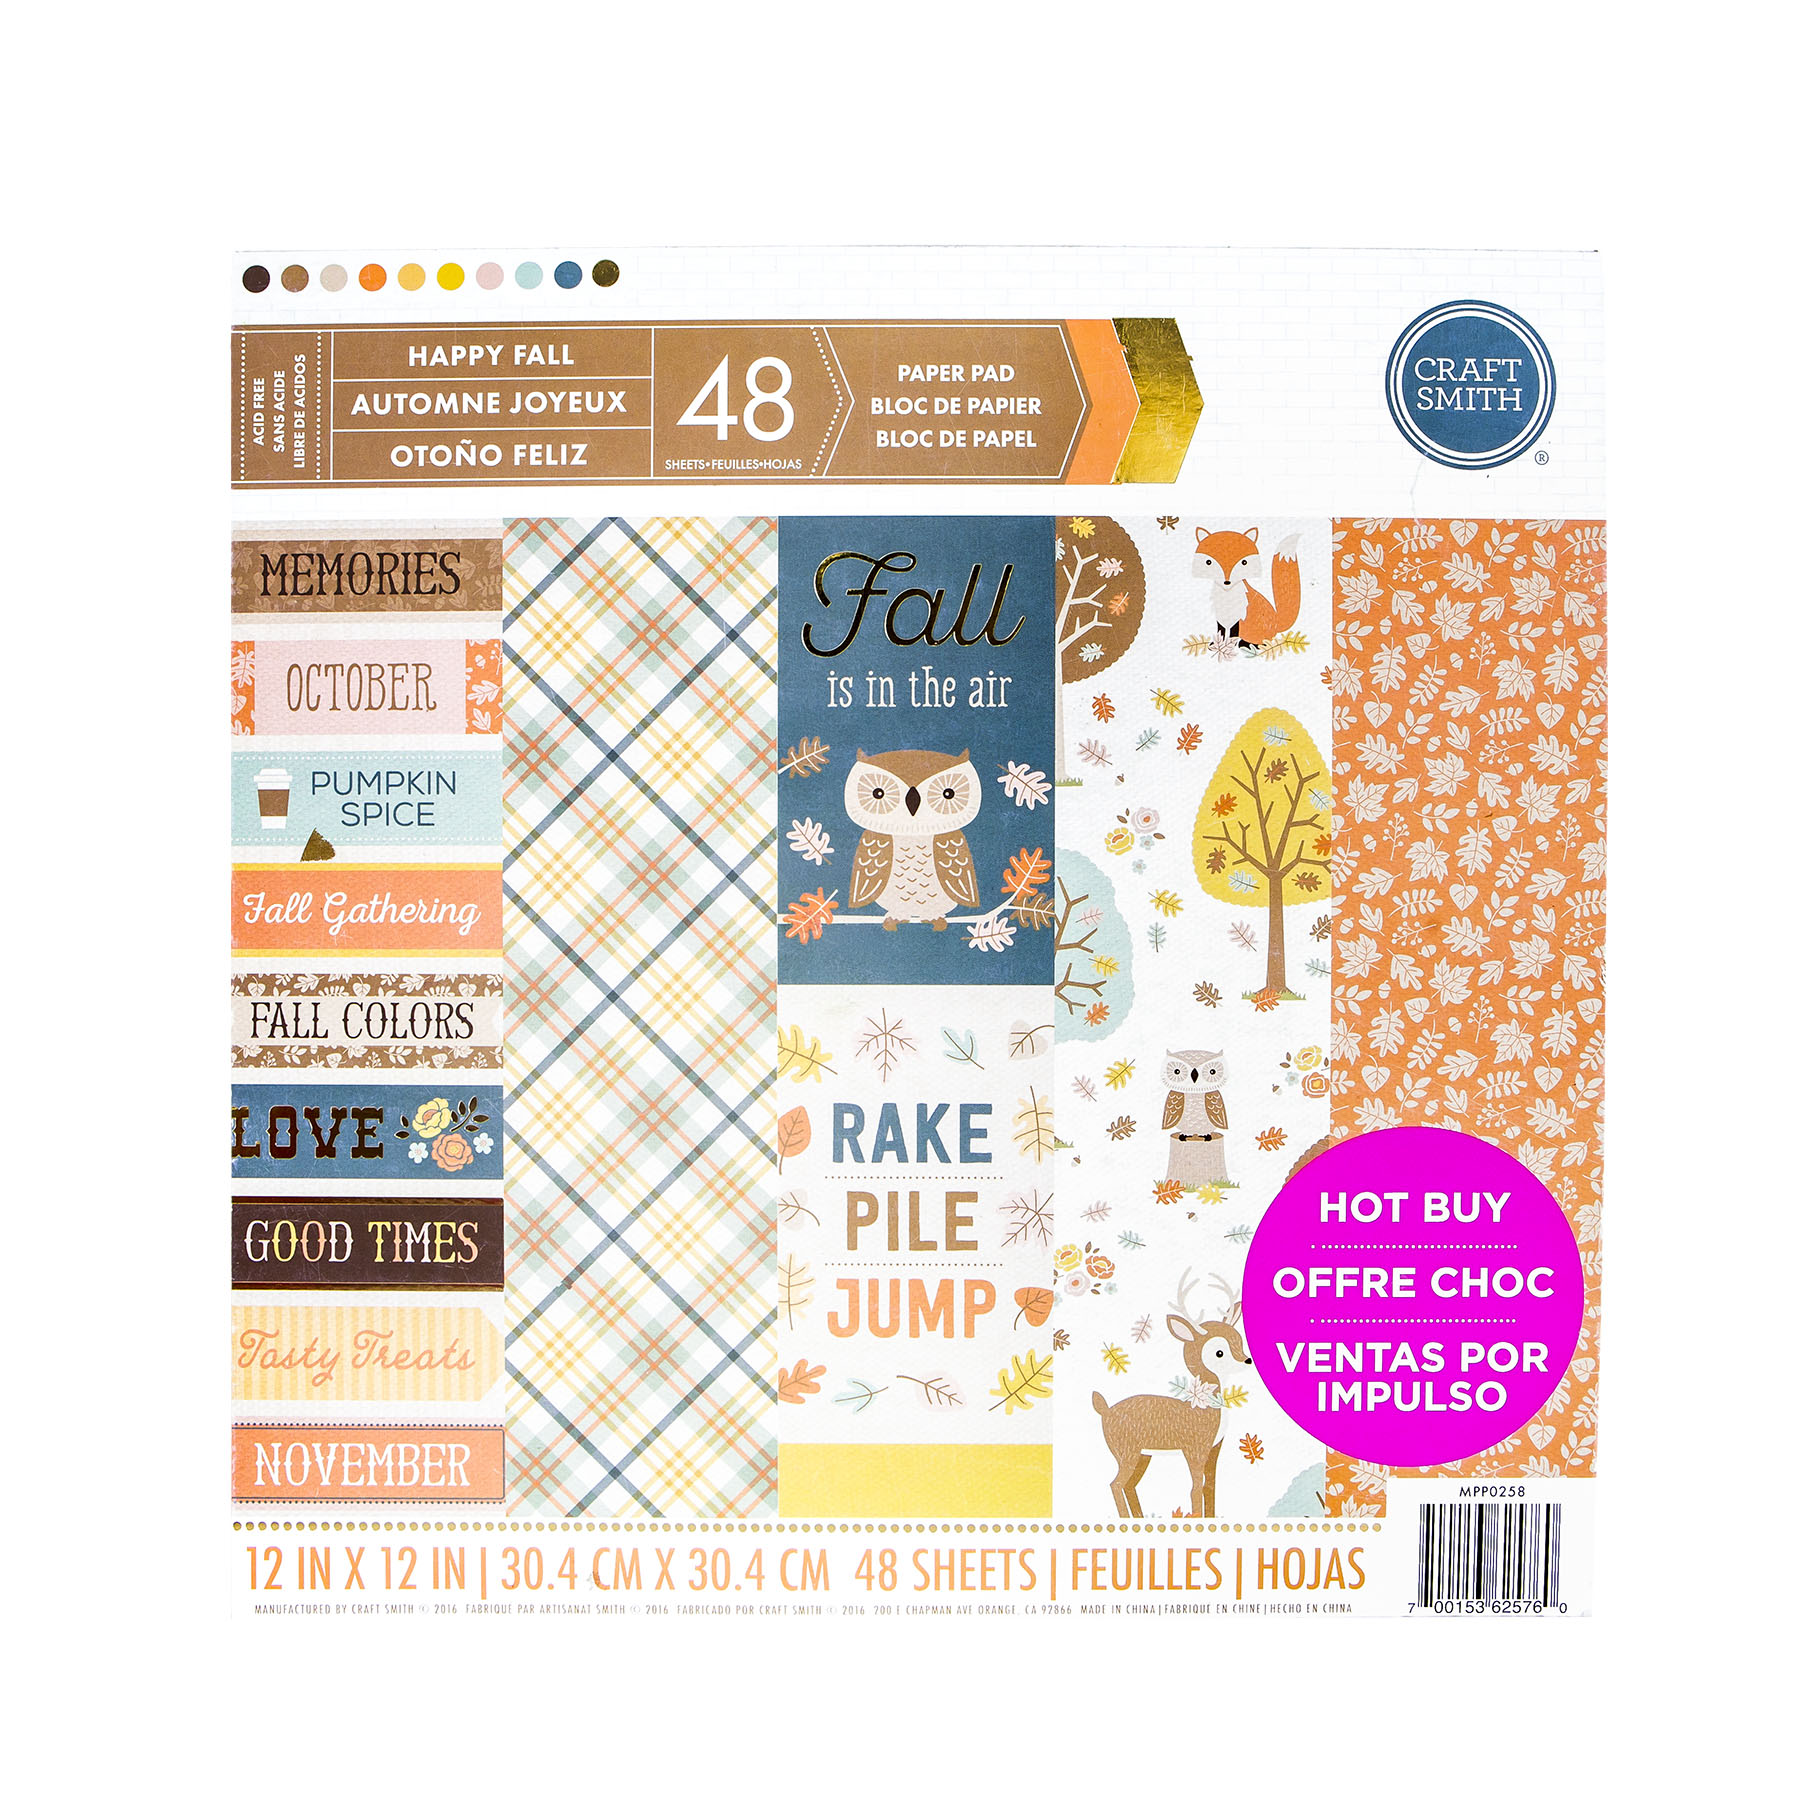 Catchy Craft Smith Paper Happy Fall Shop Craft Paper Happy Fall At Michaels Happy Birthday Fall Images Her Peanuts Happy Fall Images photos Happy Fall Images